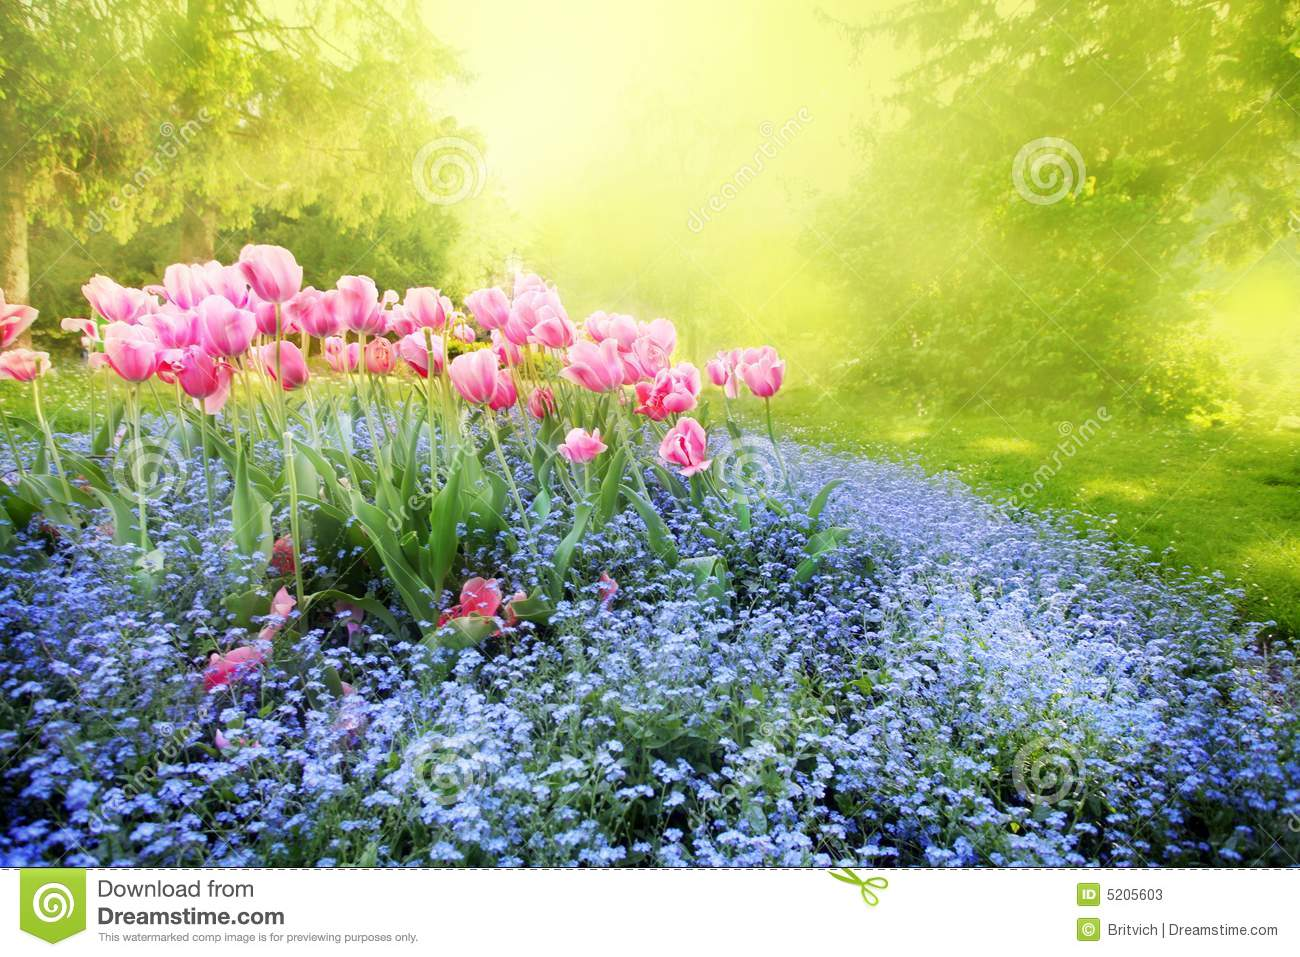 Etonnant Download Mysterious Sunny Garden Stock Image. Image Of Fresh, Flowers    5205603